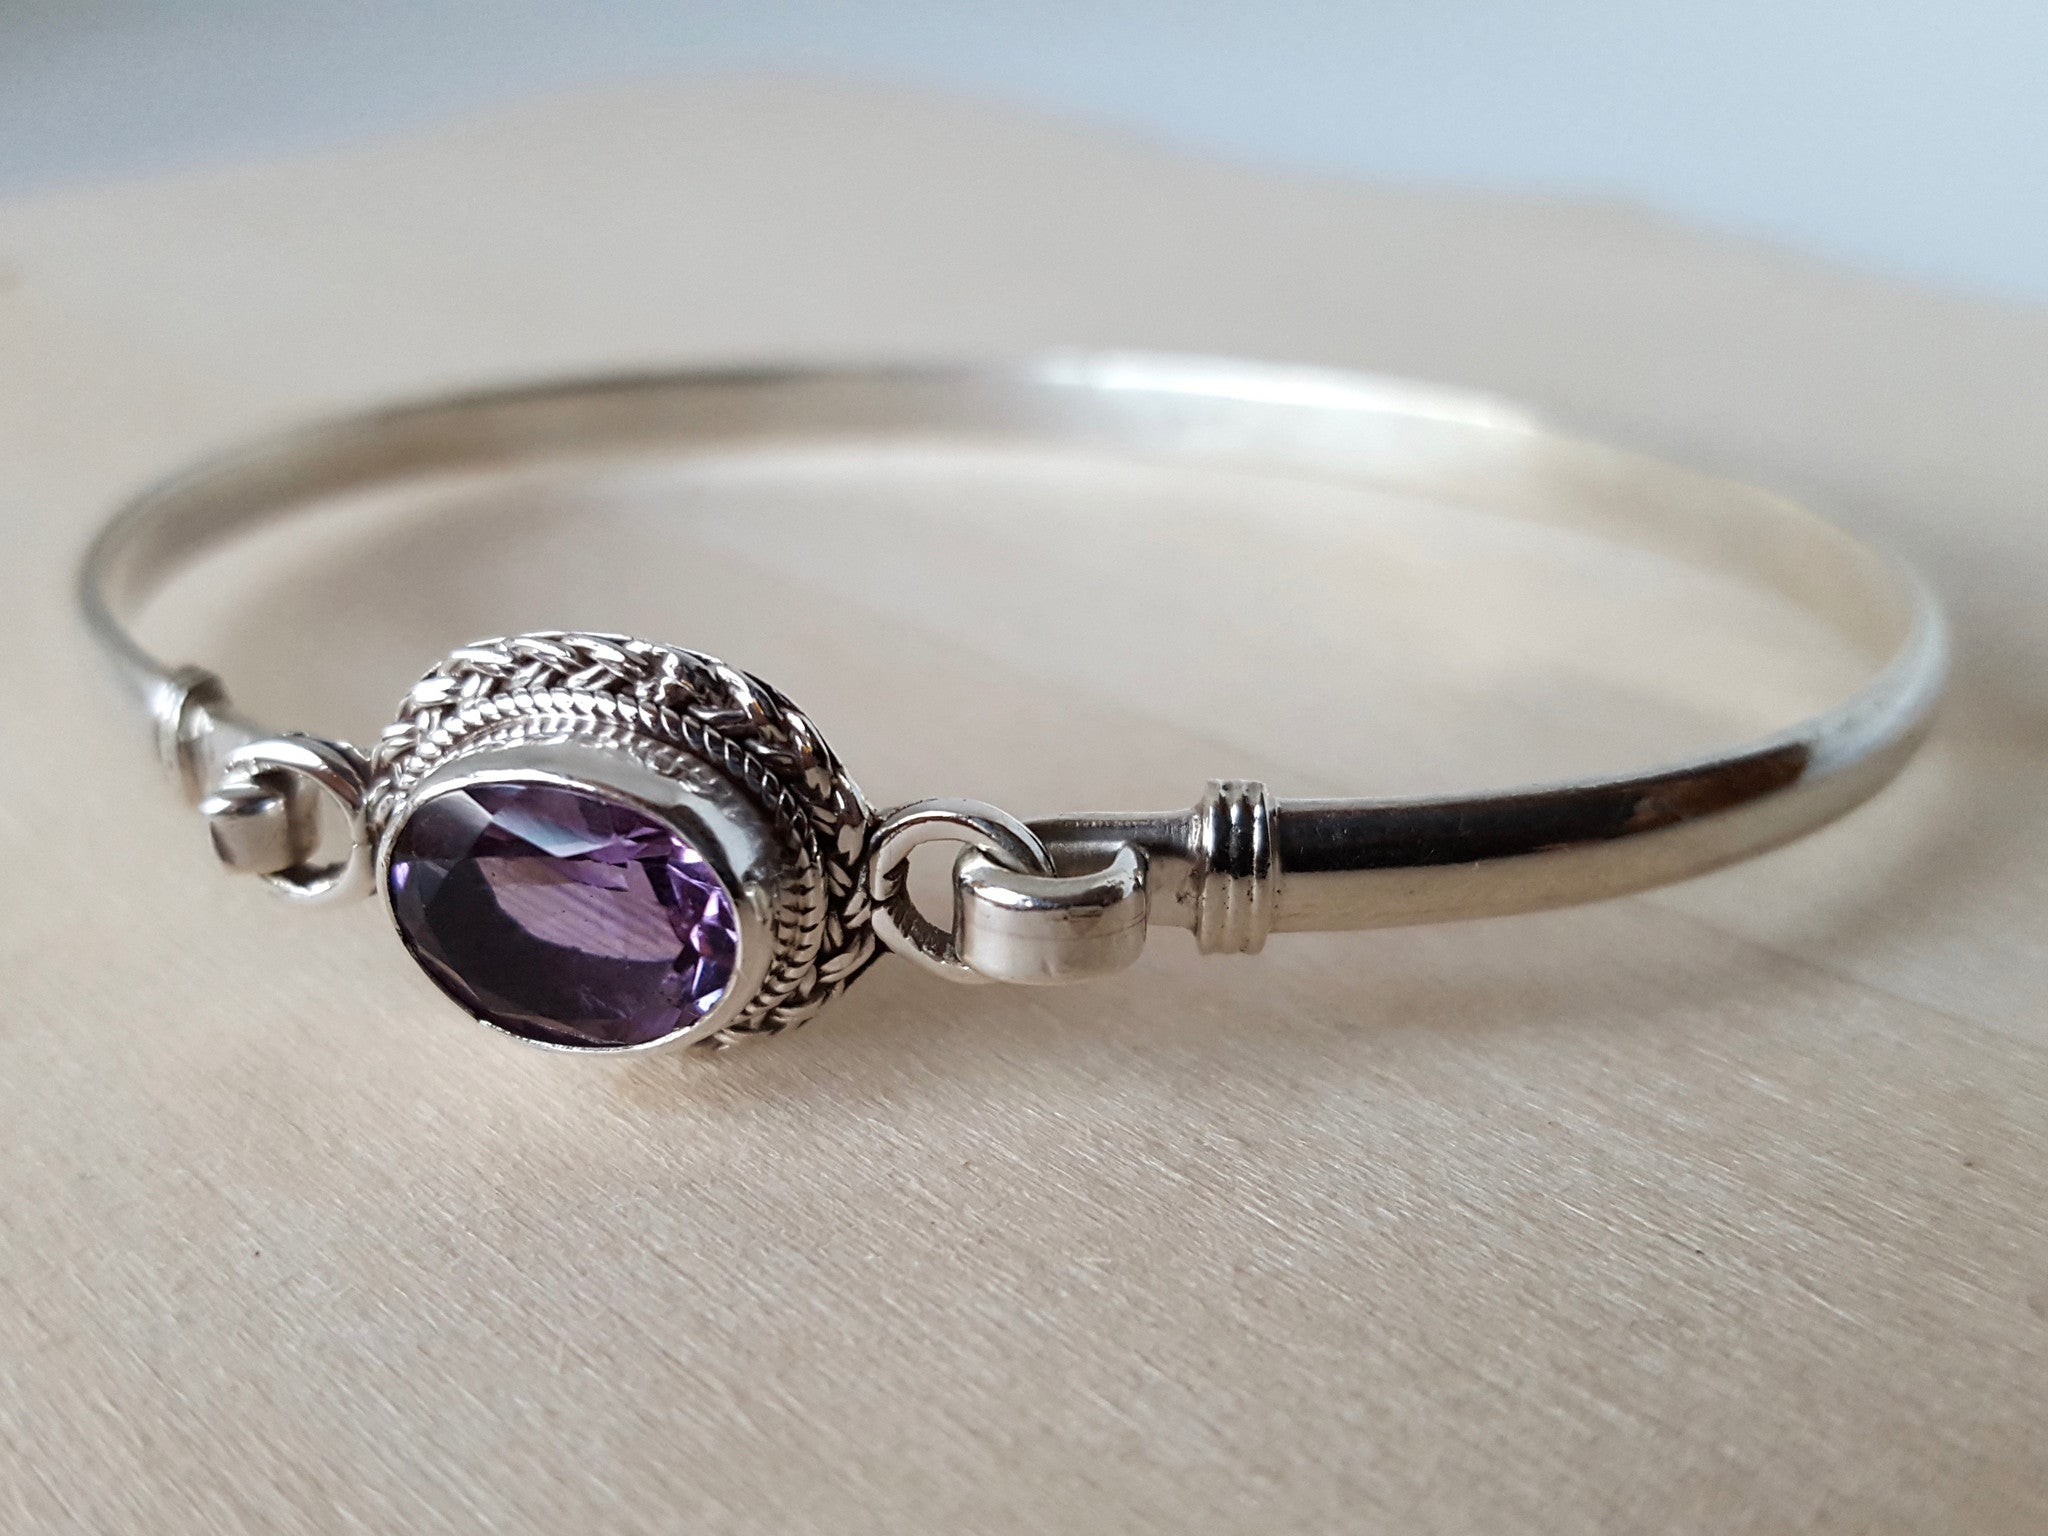 amethyst jewellery bangle mackintosh silver bangles sterling rennie